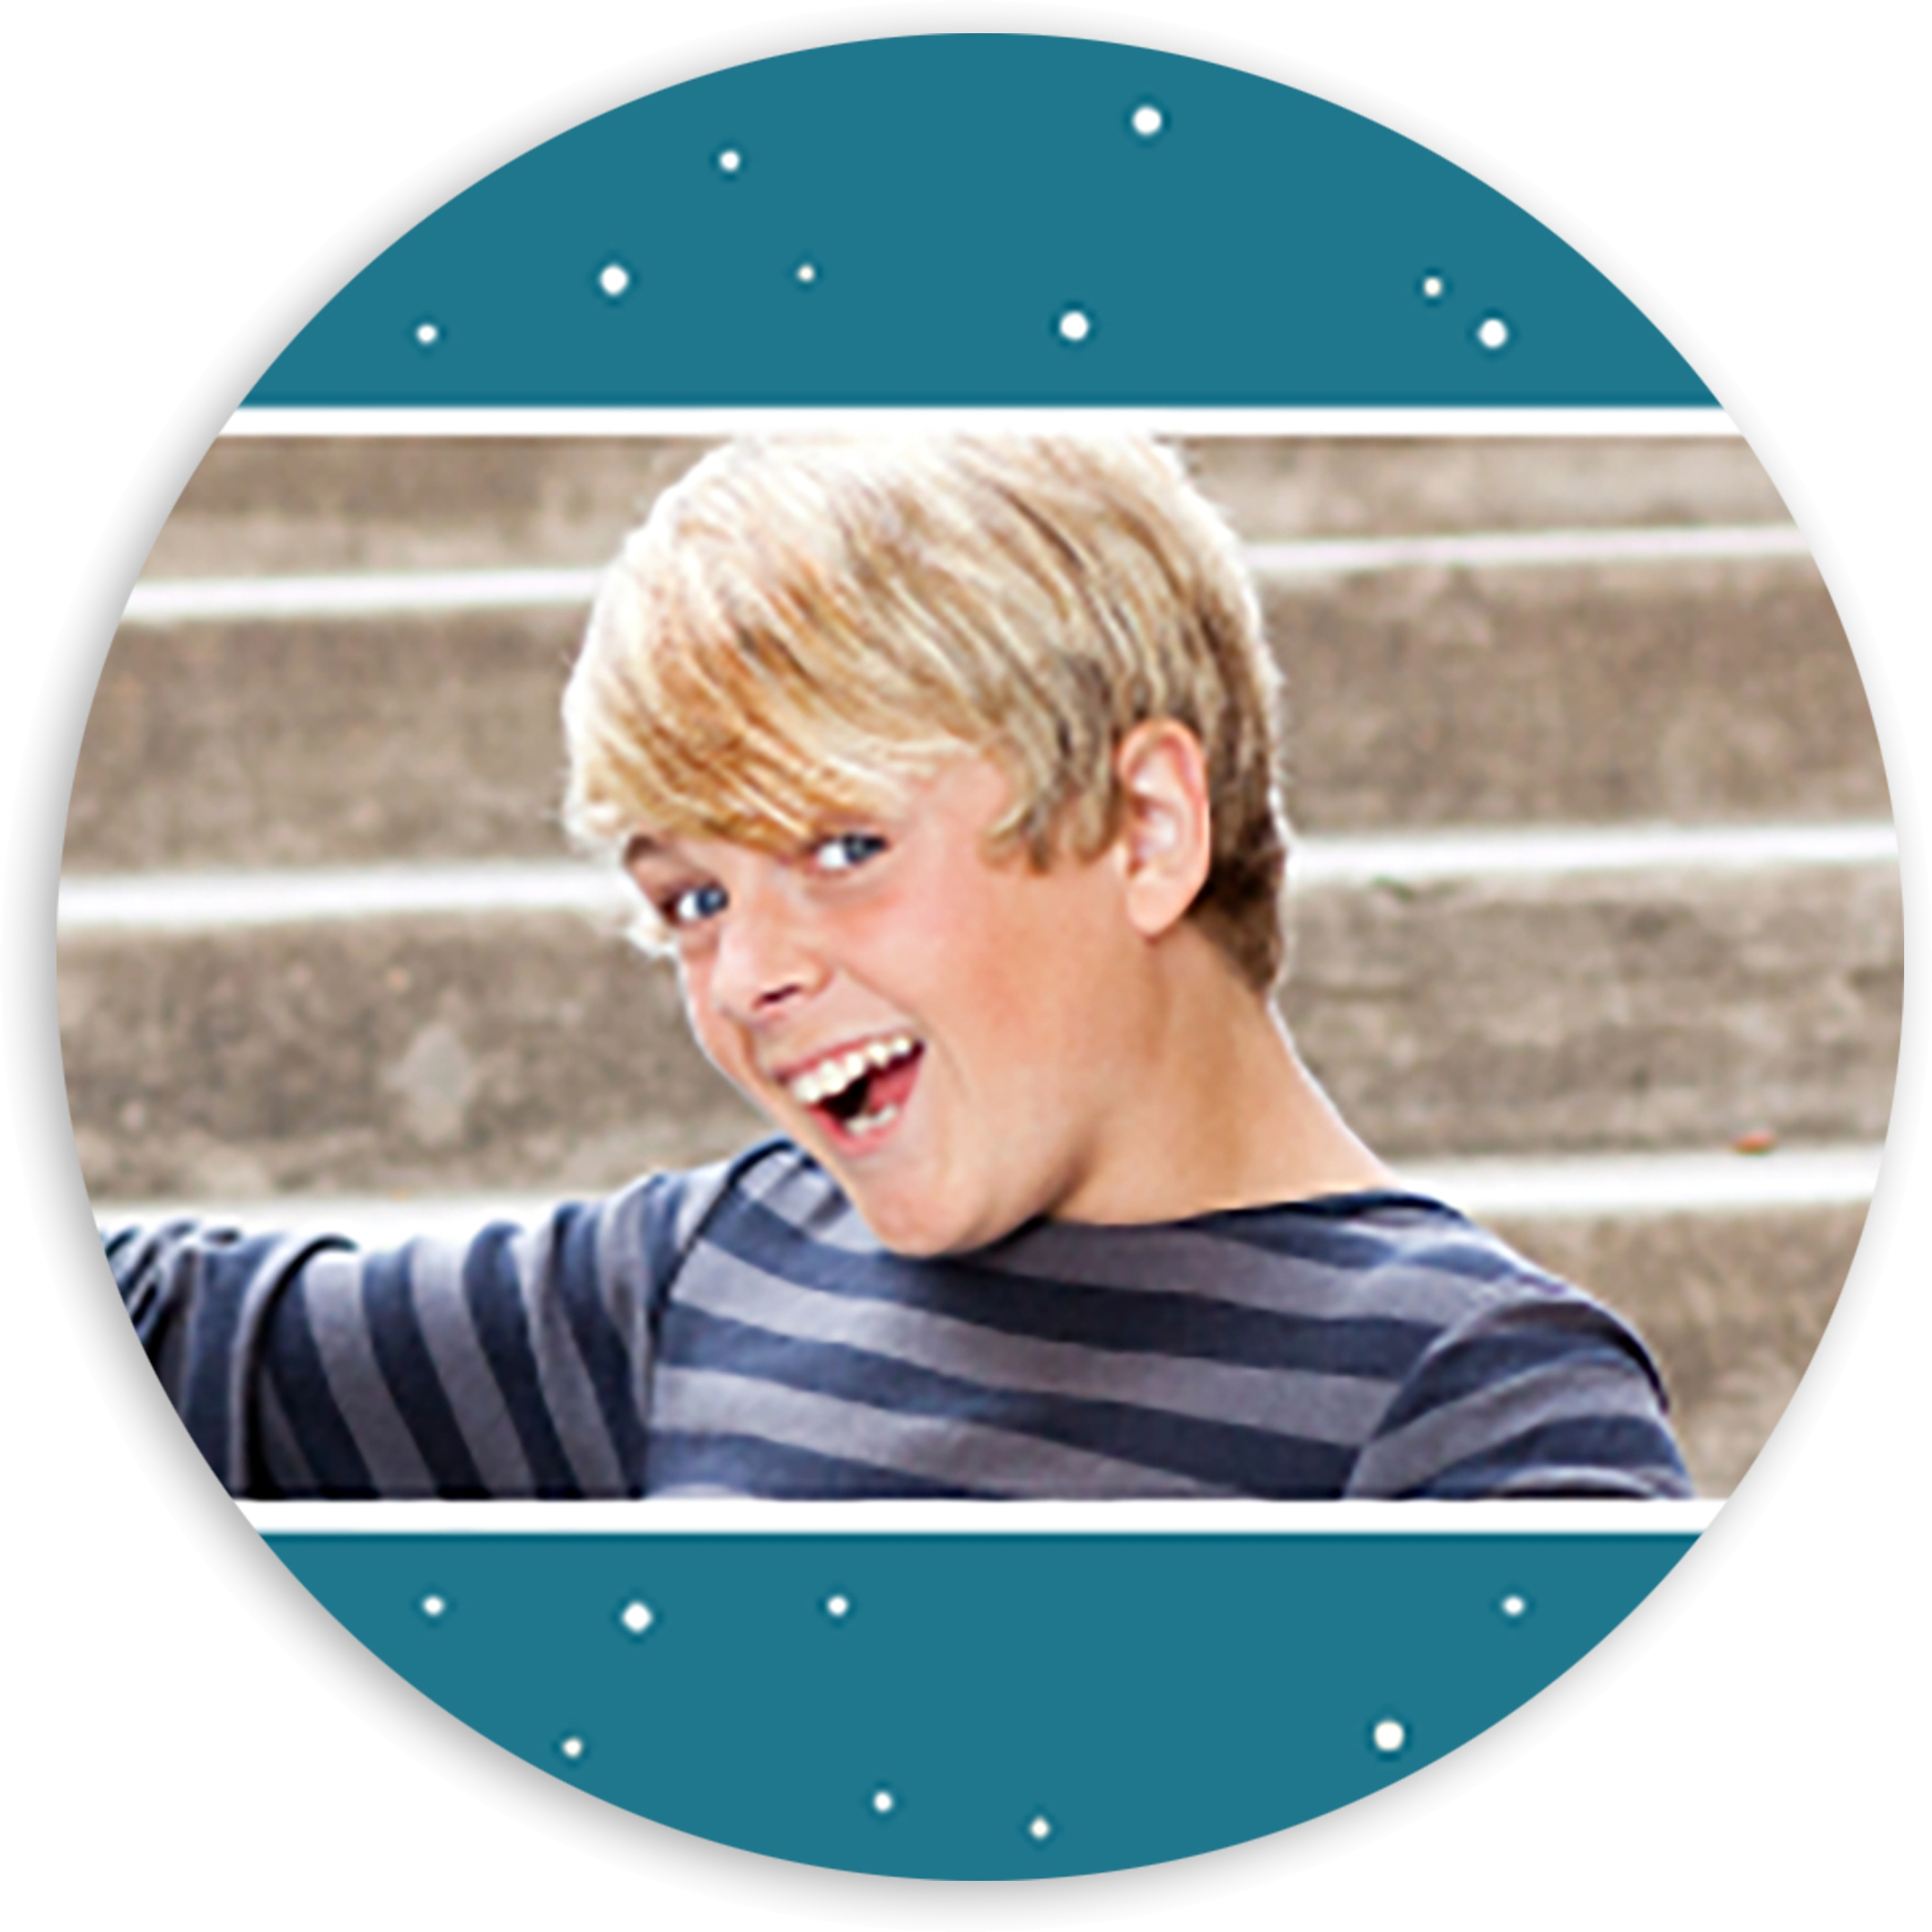 Space Hero - Personalized 1.75 Circle Seal Sticker